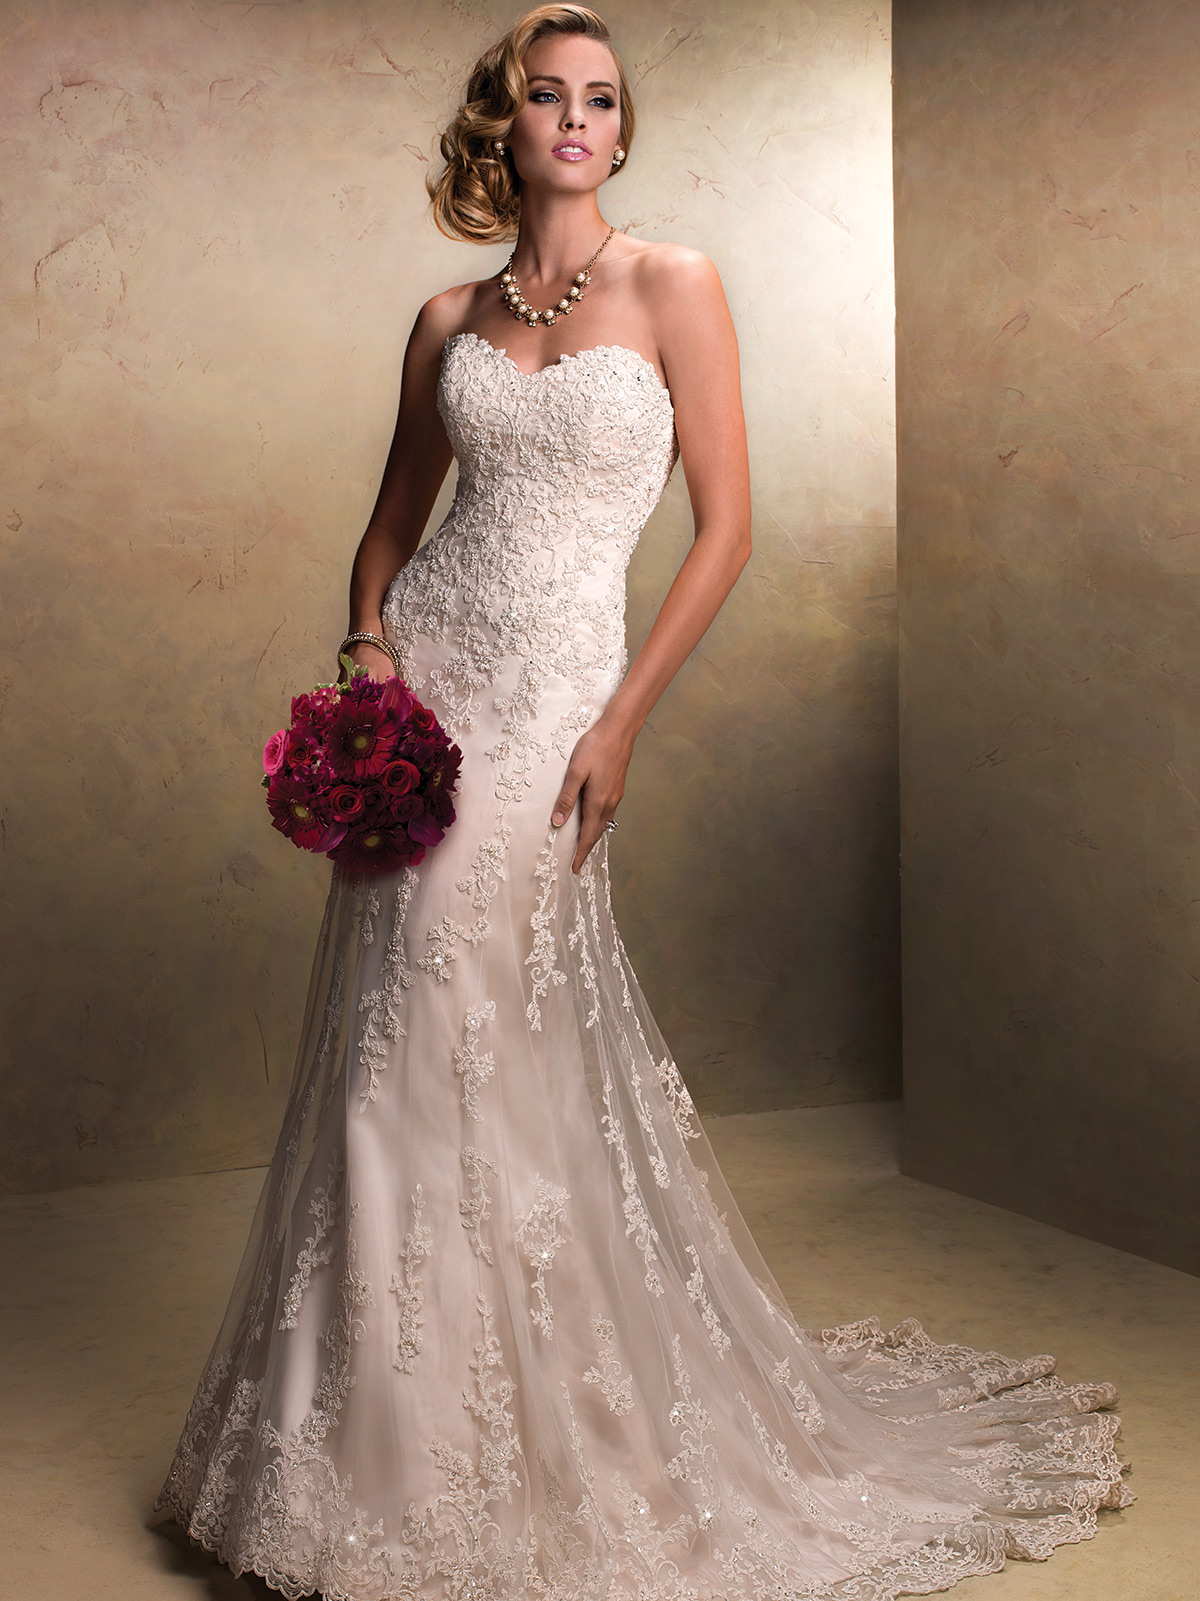 Strapless Tulle Lace Wedding Gown By Maggie Sottero Emma